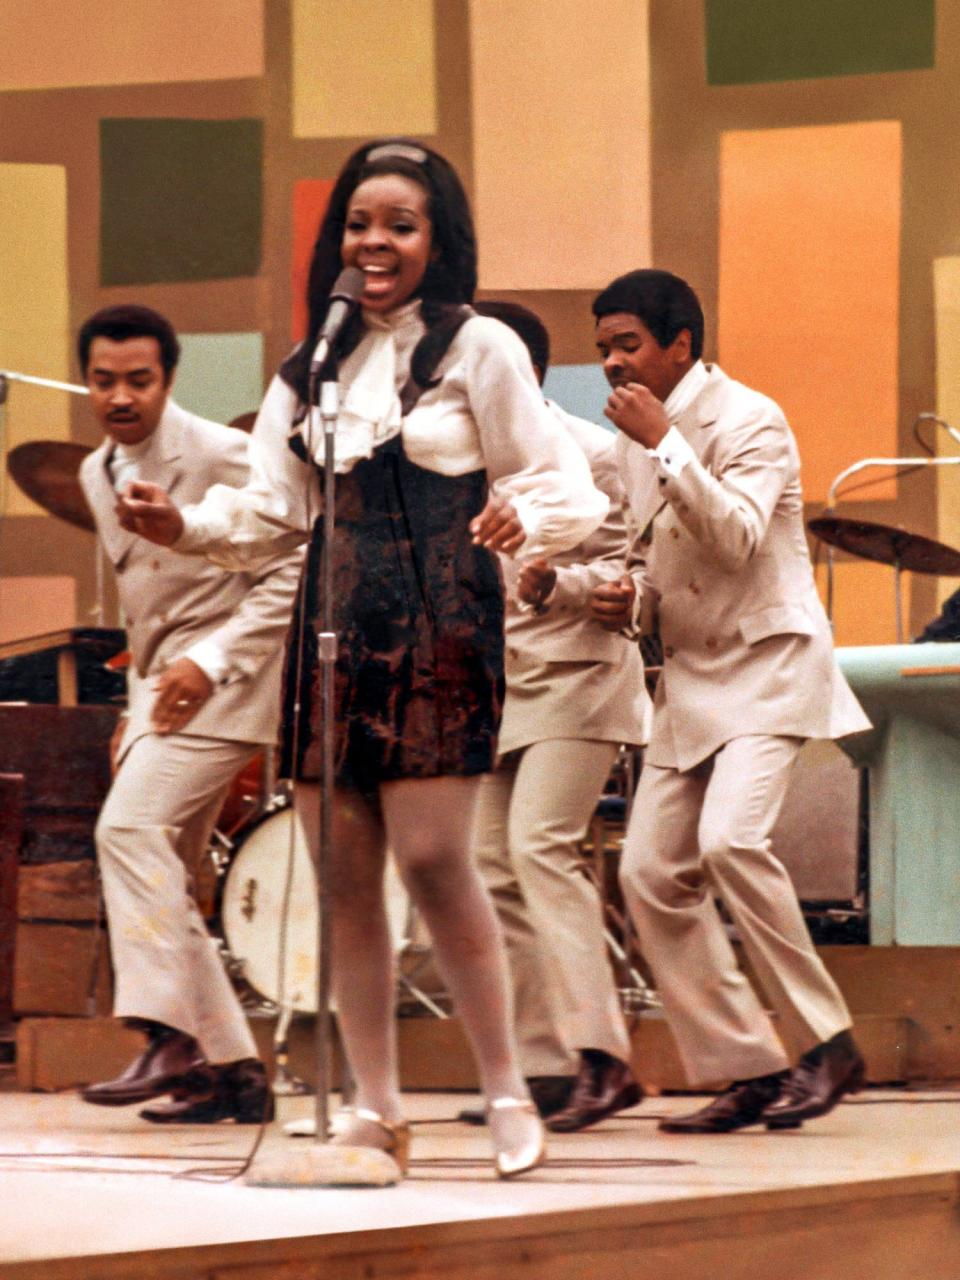 """This image released by Searchlight Pictures shows Gladys Knight and the Pips at the Harlem Cultural Festival in 1969, featured in the documentary """"Summer of Soul."""" (Searchlight Pictures via AP)"""